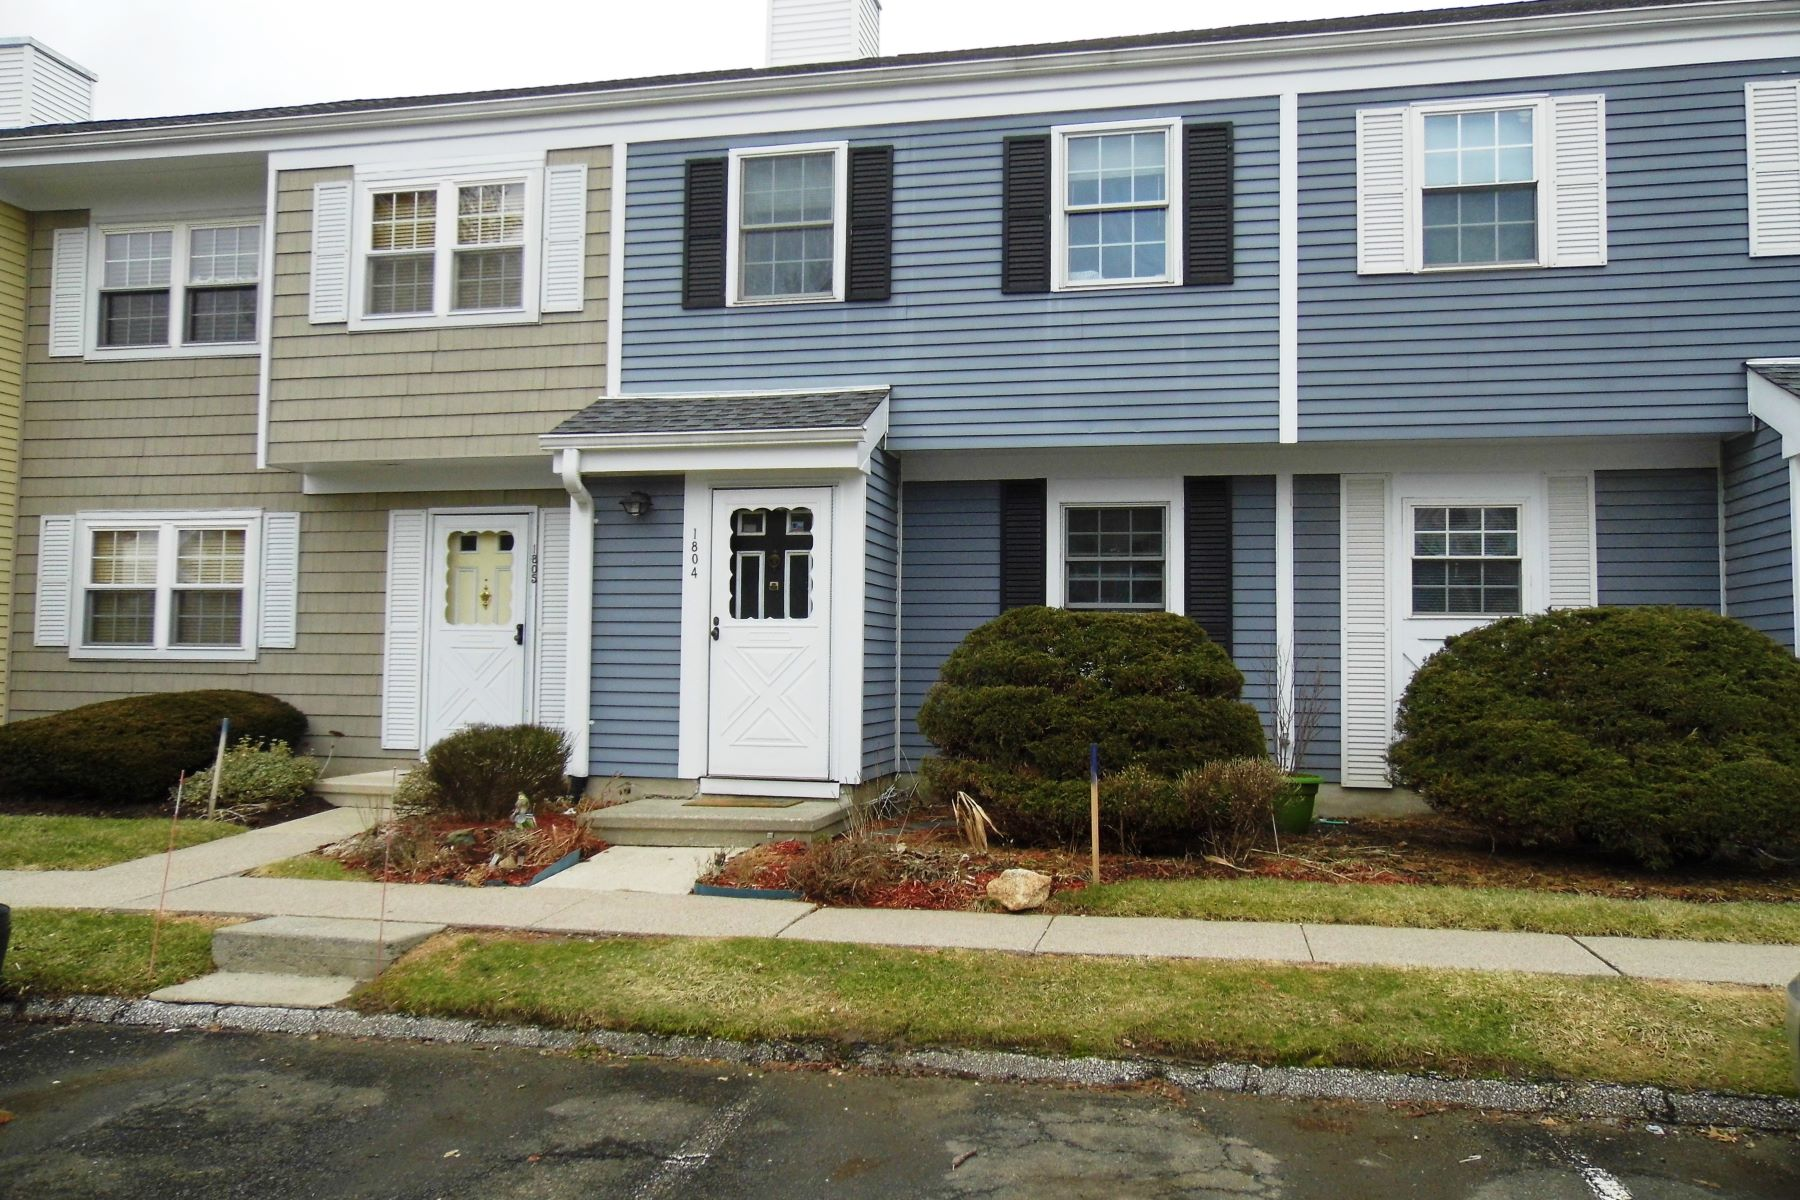 Townhouse for Sale at Extremely Well Kept Townhome 81 Park Avenue 1804, Danbury, Connecticut, 06810 United States